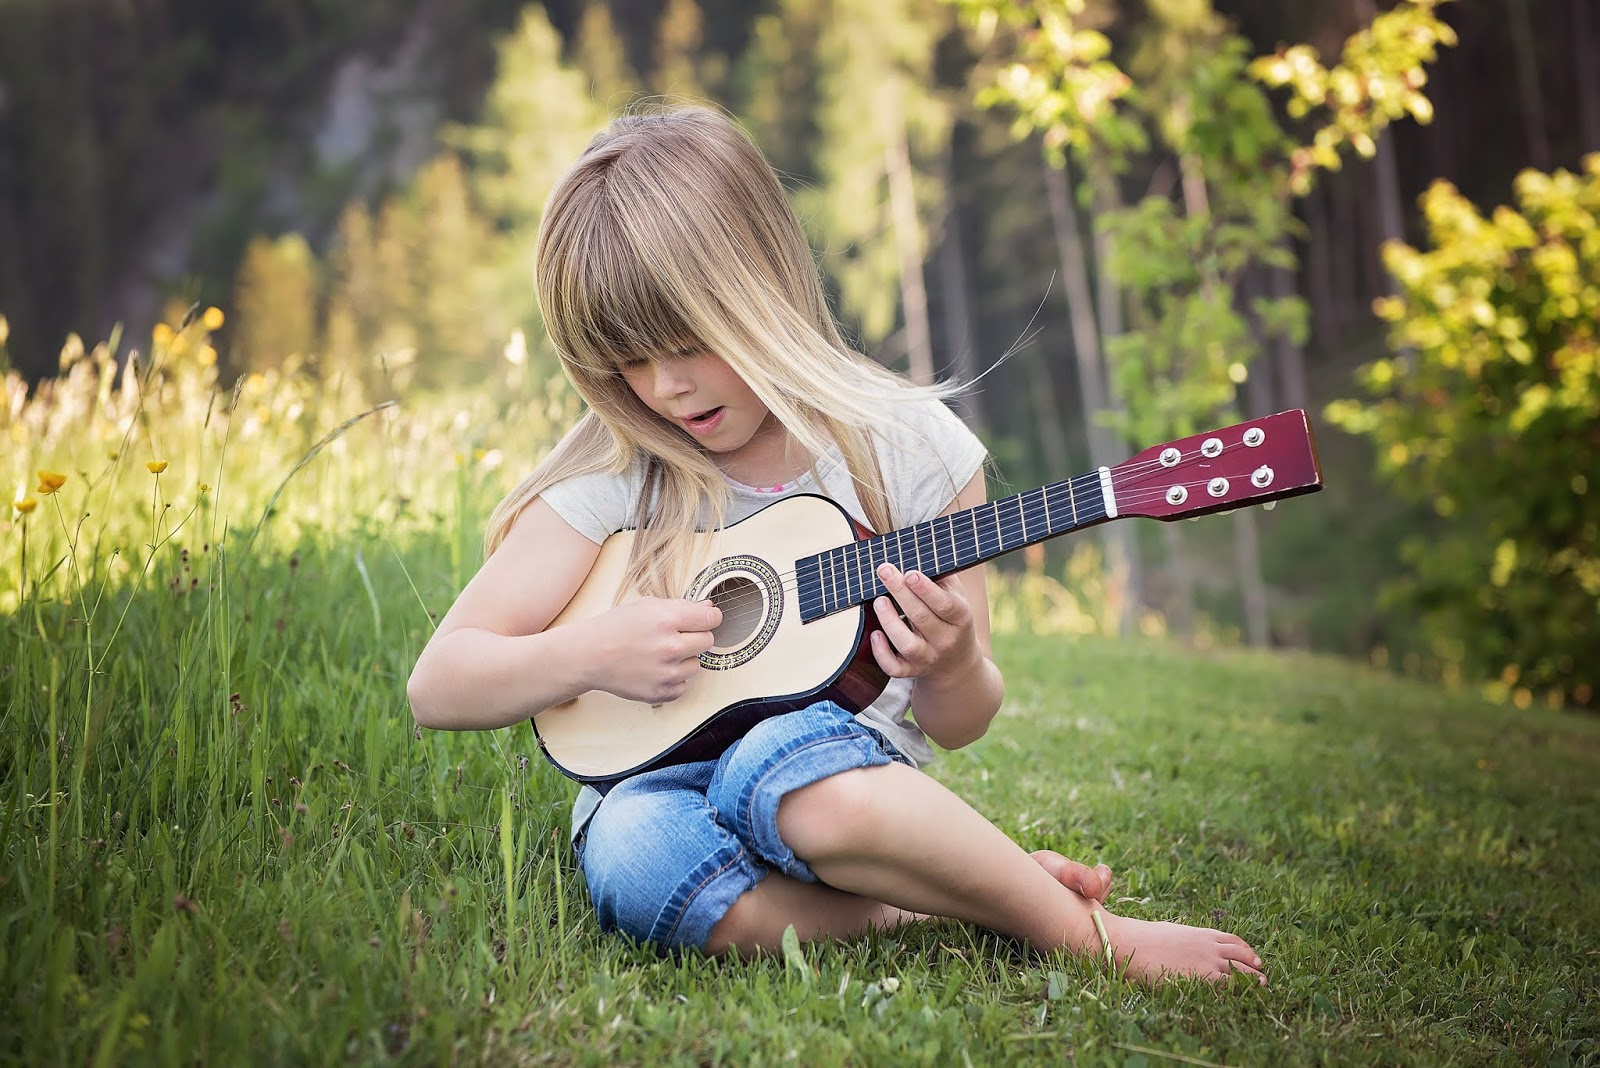 Bible Lessons From The Outdoors: Christian Songs About Nature For